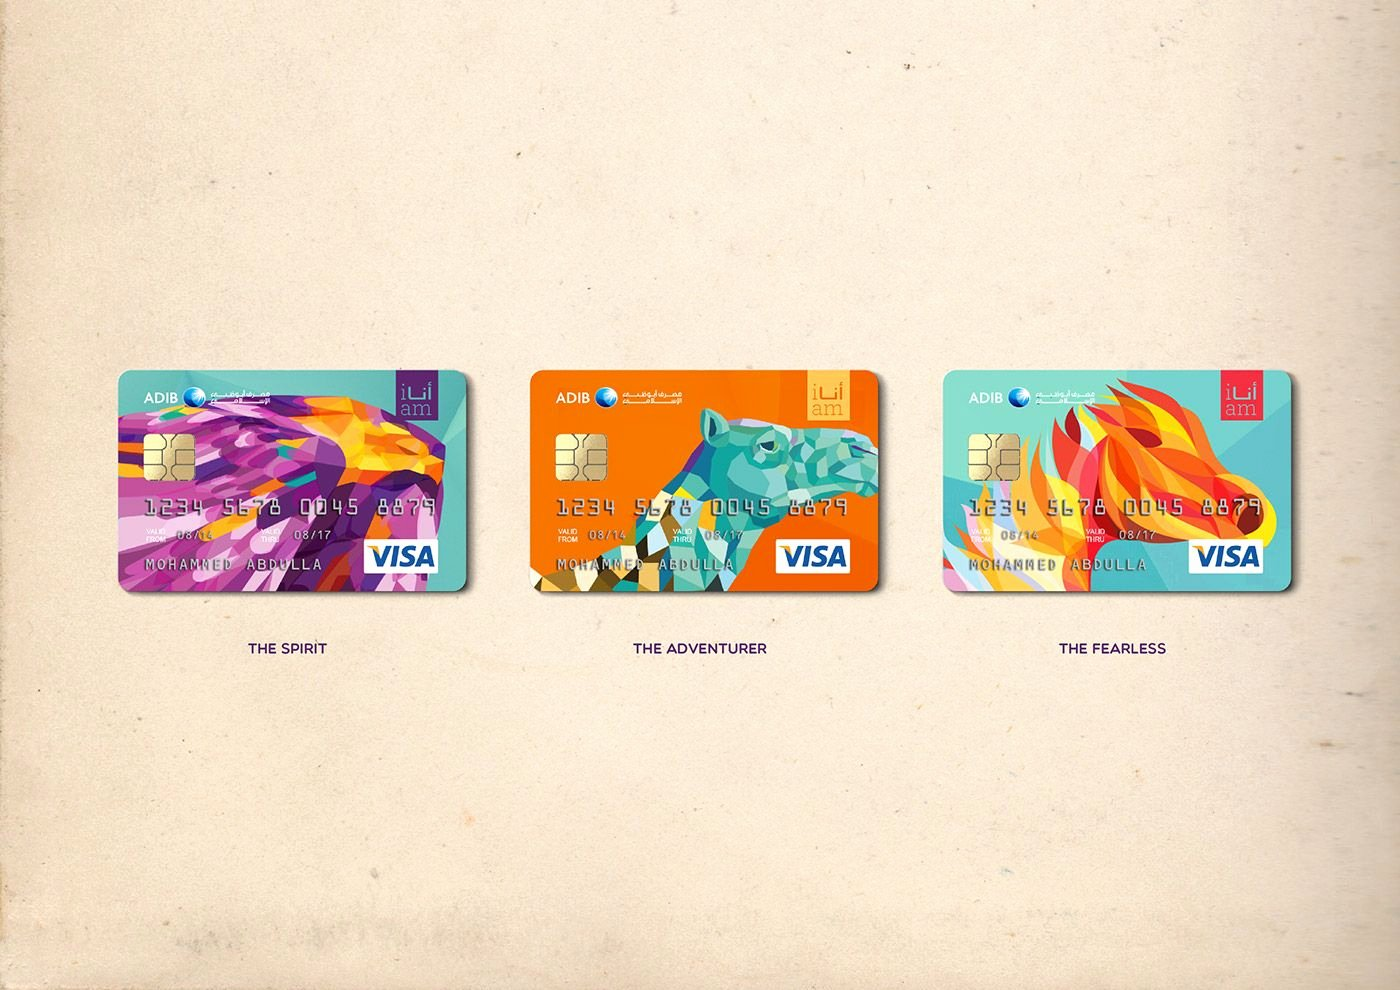 Discover Credit Card Designs New Showcase and Discover Creative Work On the World S Leading